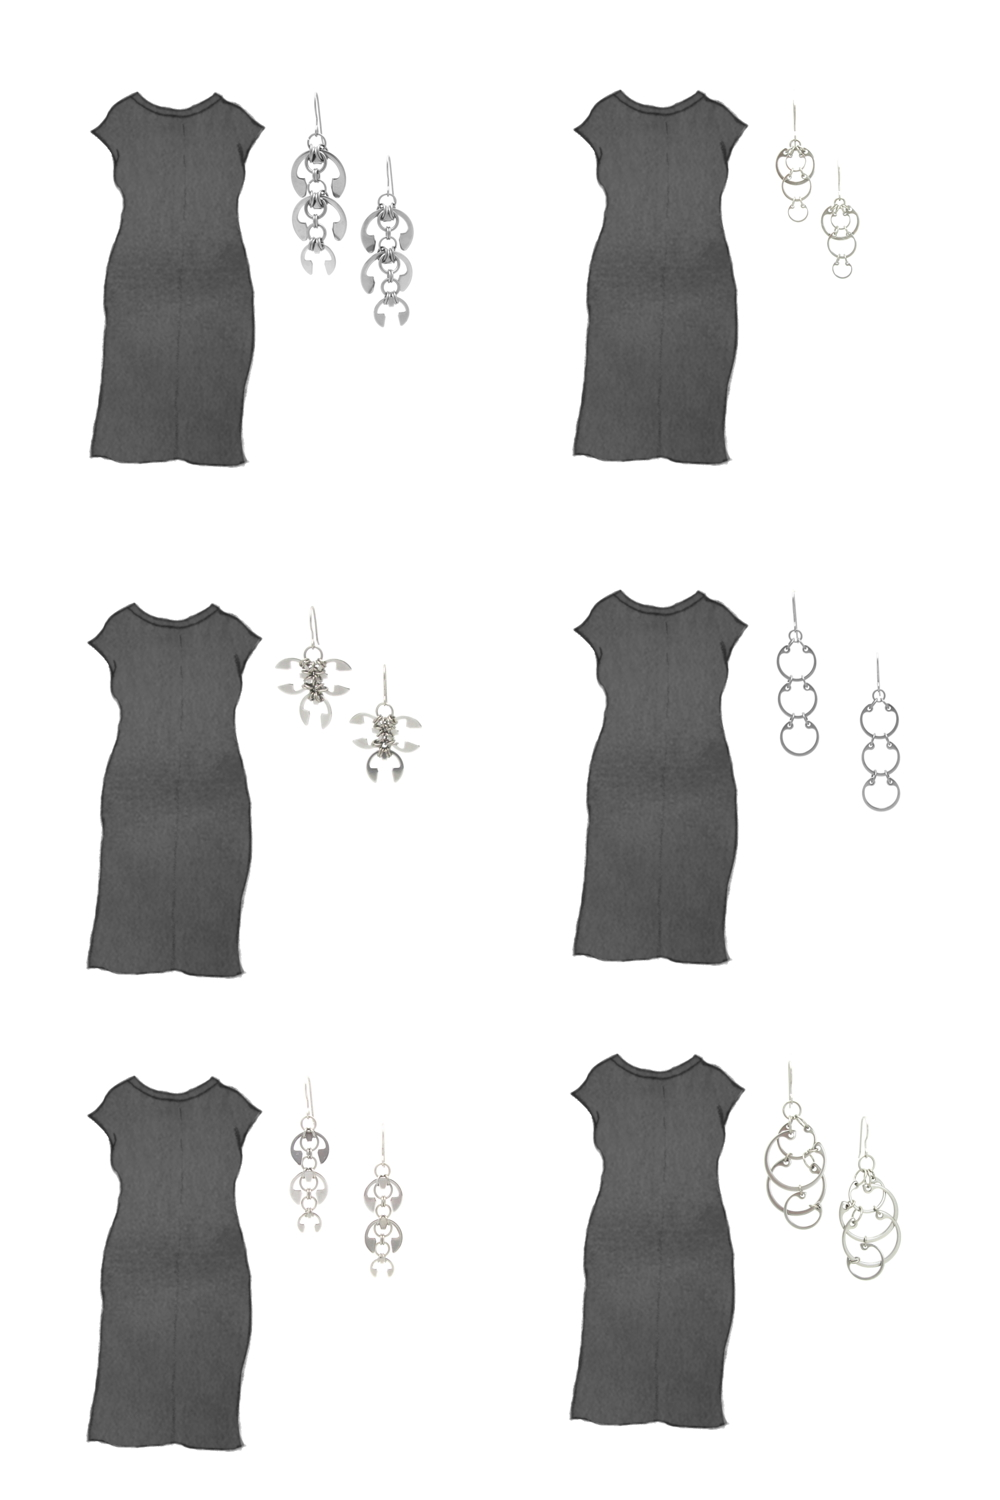 Style sketch of Everlane's Luxe Cotton Side-Slit Tee Dress in black, with 6 styles of Wraptillion's modern chainmail earrings.